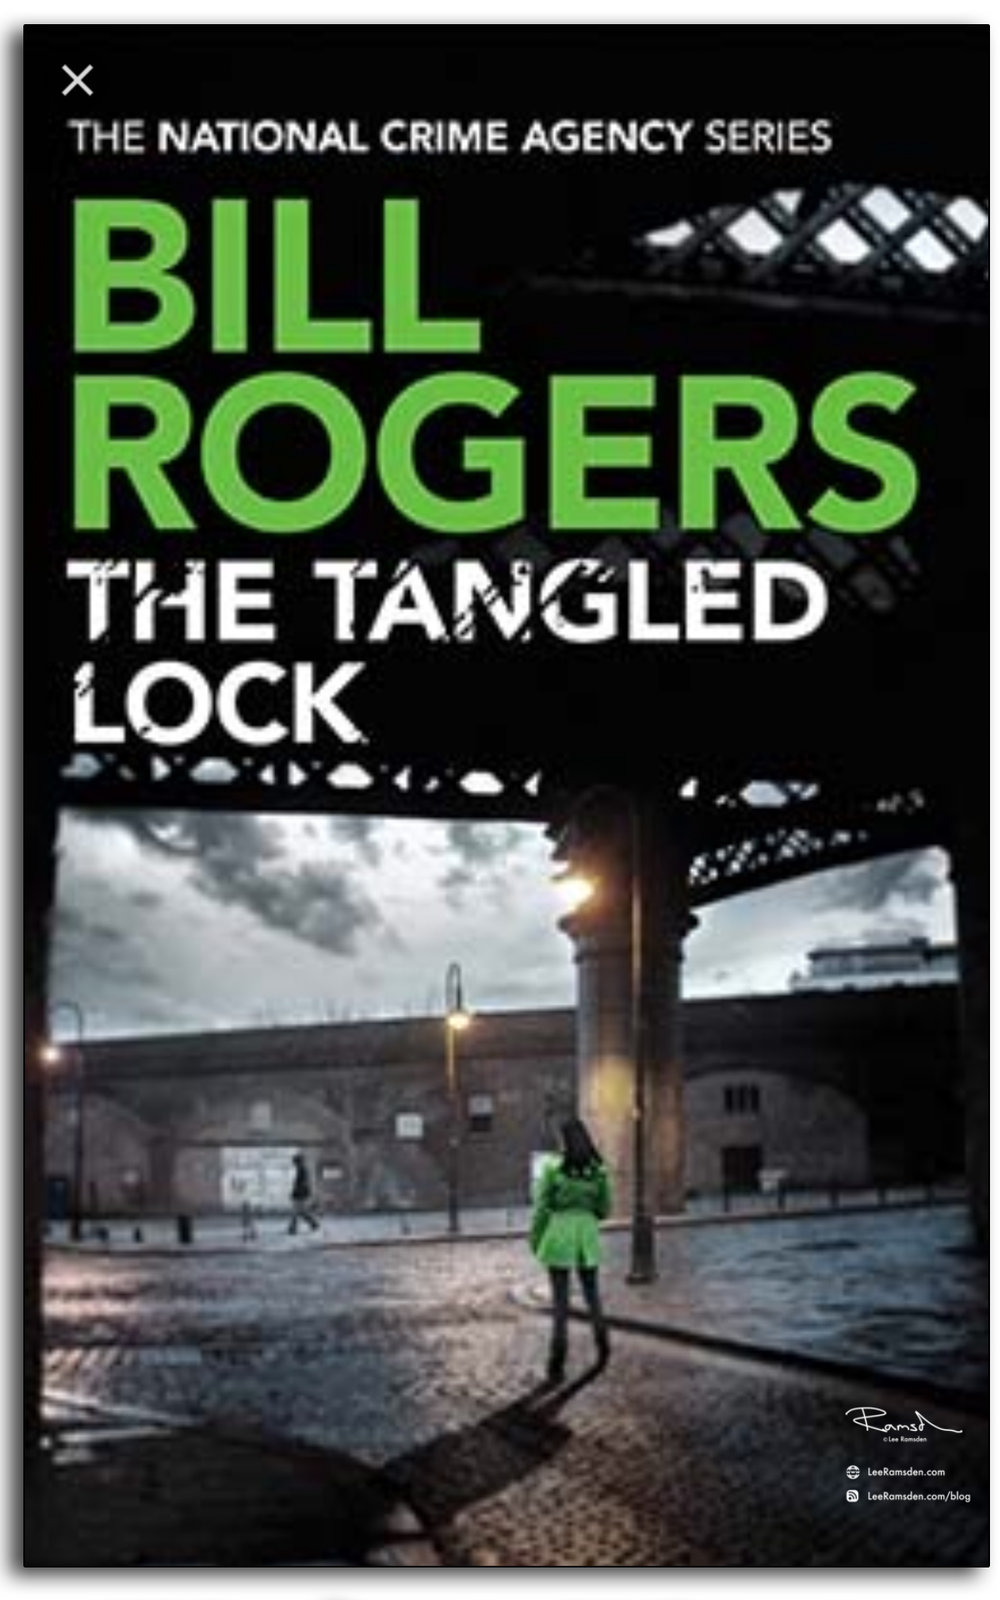 Bill Rogers, the tangled lock, national crime agency, lee ramsden